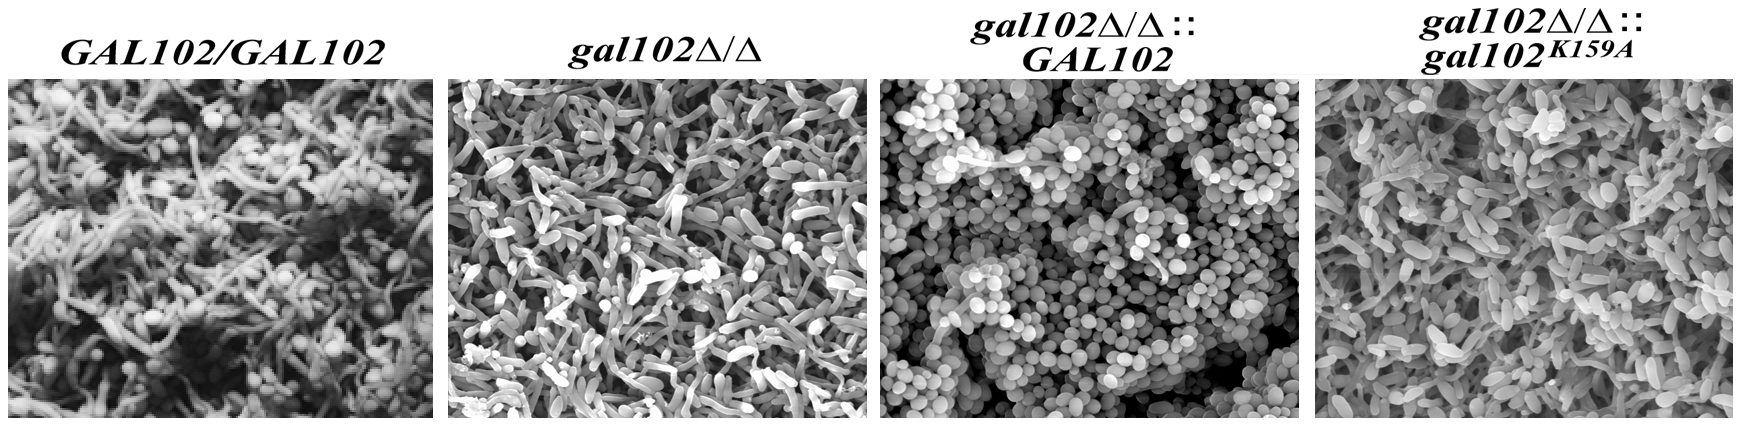 Biofilm structure and diffusion properties are seriously compromised in <i>C. albicans</i> lacking <i>GAL102</i>.